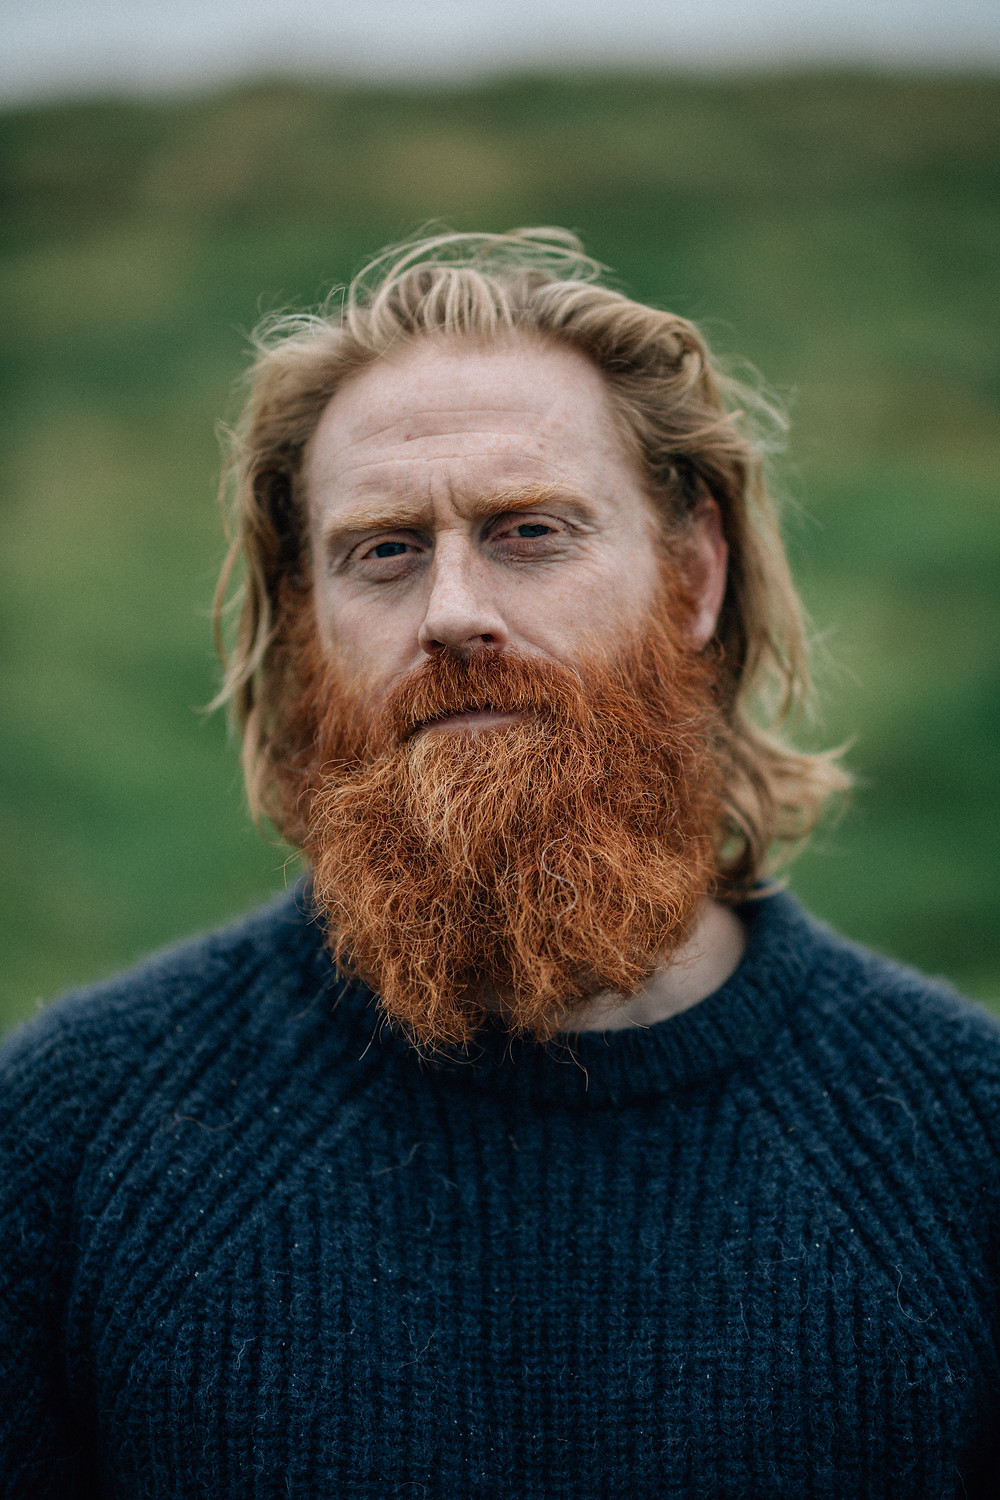 Al Mennie, ireland, irish man, red head, beard, irish surfer, irish man, viking, ben ono